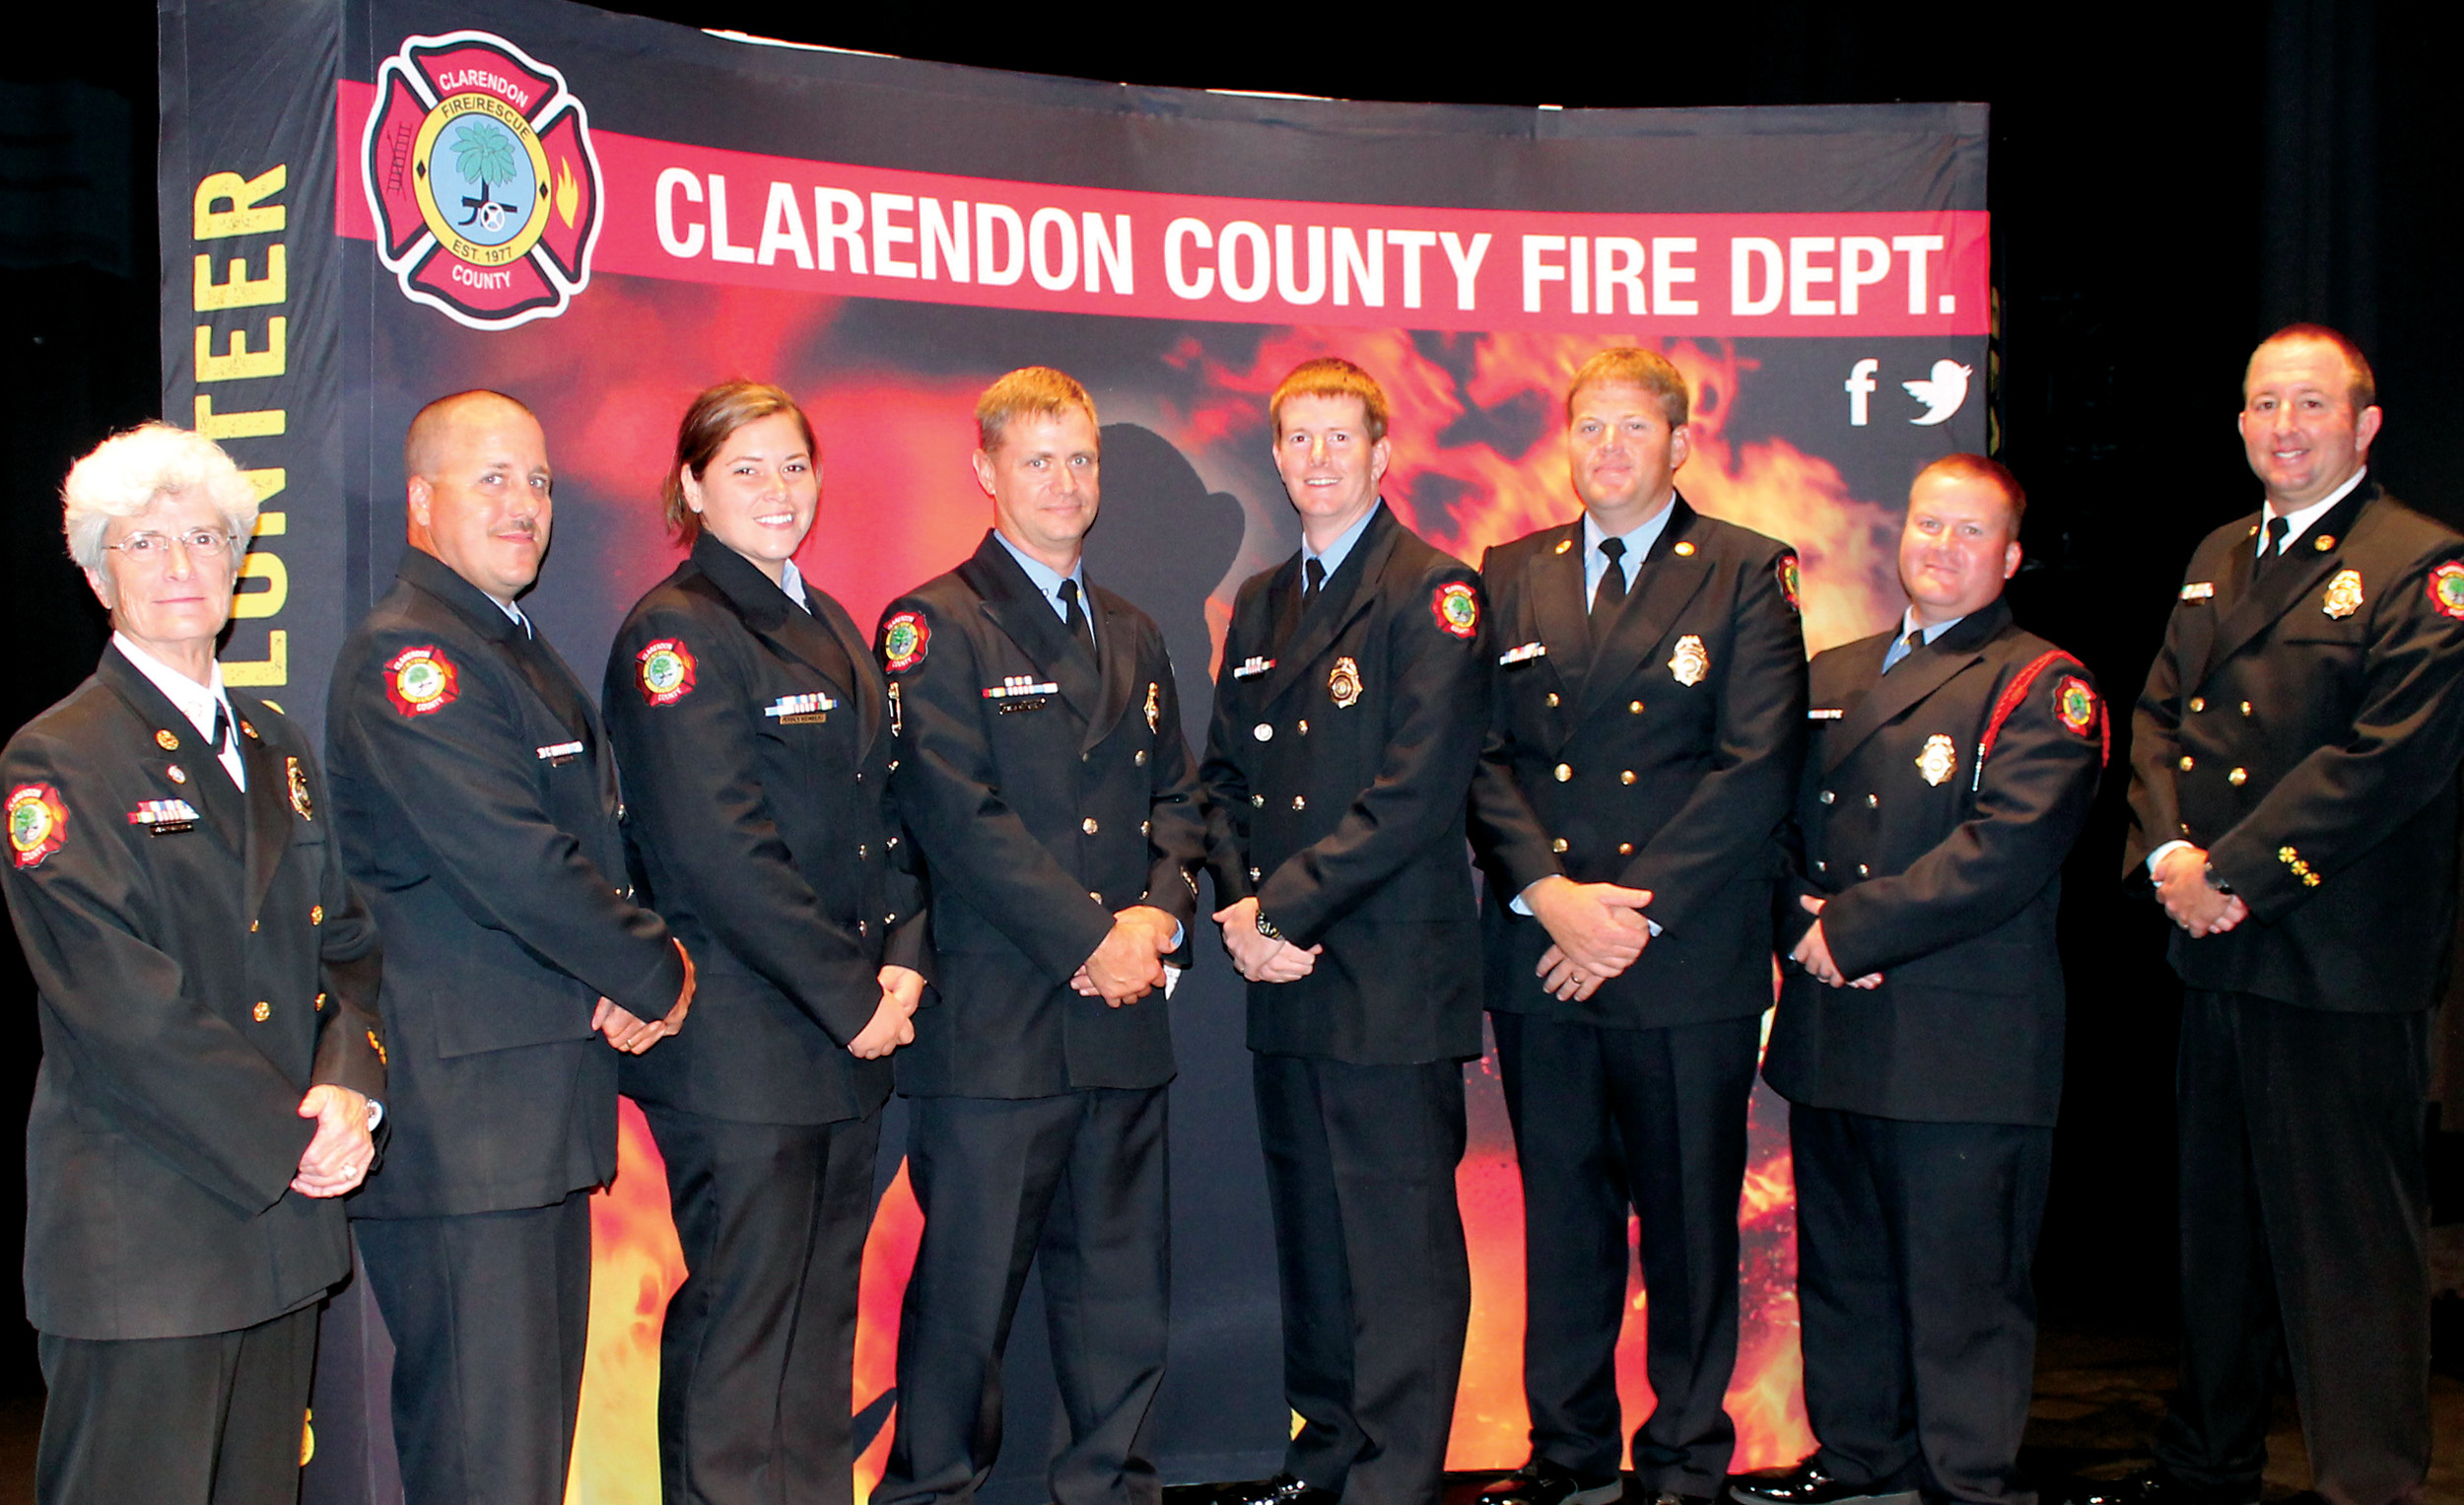 SHARRON HALEY / THE SUMTER ITEMSix career firefighters with the Clarendon County Fire Department were promoted during the department's Sept. 19 recruit graduation ceremony. Shown are Clarendon County Fire Chief Frances Richbourg alongside the newly promoted firefighters: Lt. Joseph McLeod, Lt. D. Mitchum, Lt. Jessica Weinberg, Capt. Michael Cothran, Captain F.B. Jones and Capt. Lee Mahoney with Deputy Chief Michael Johnson.